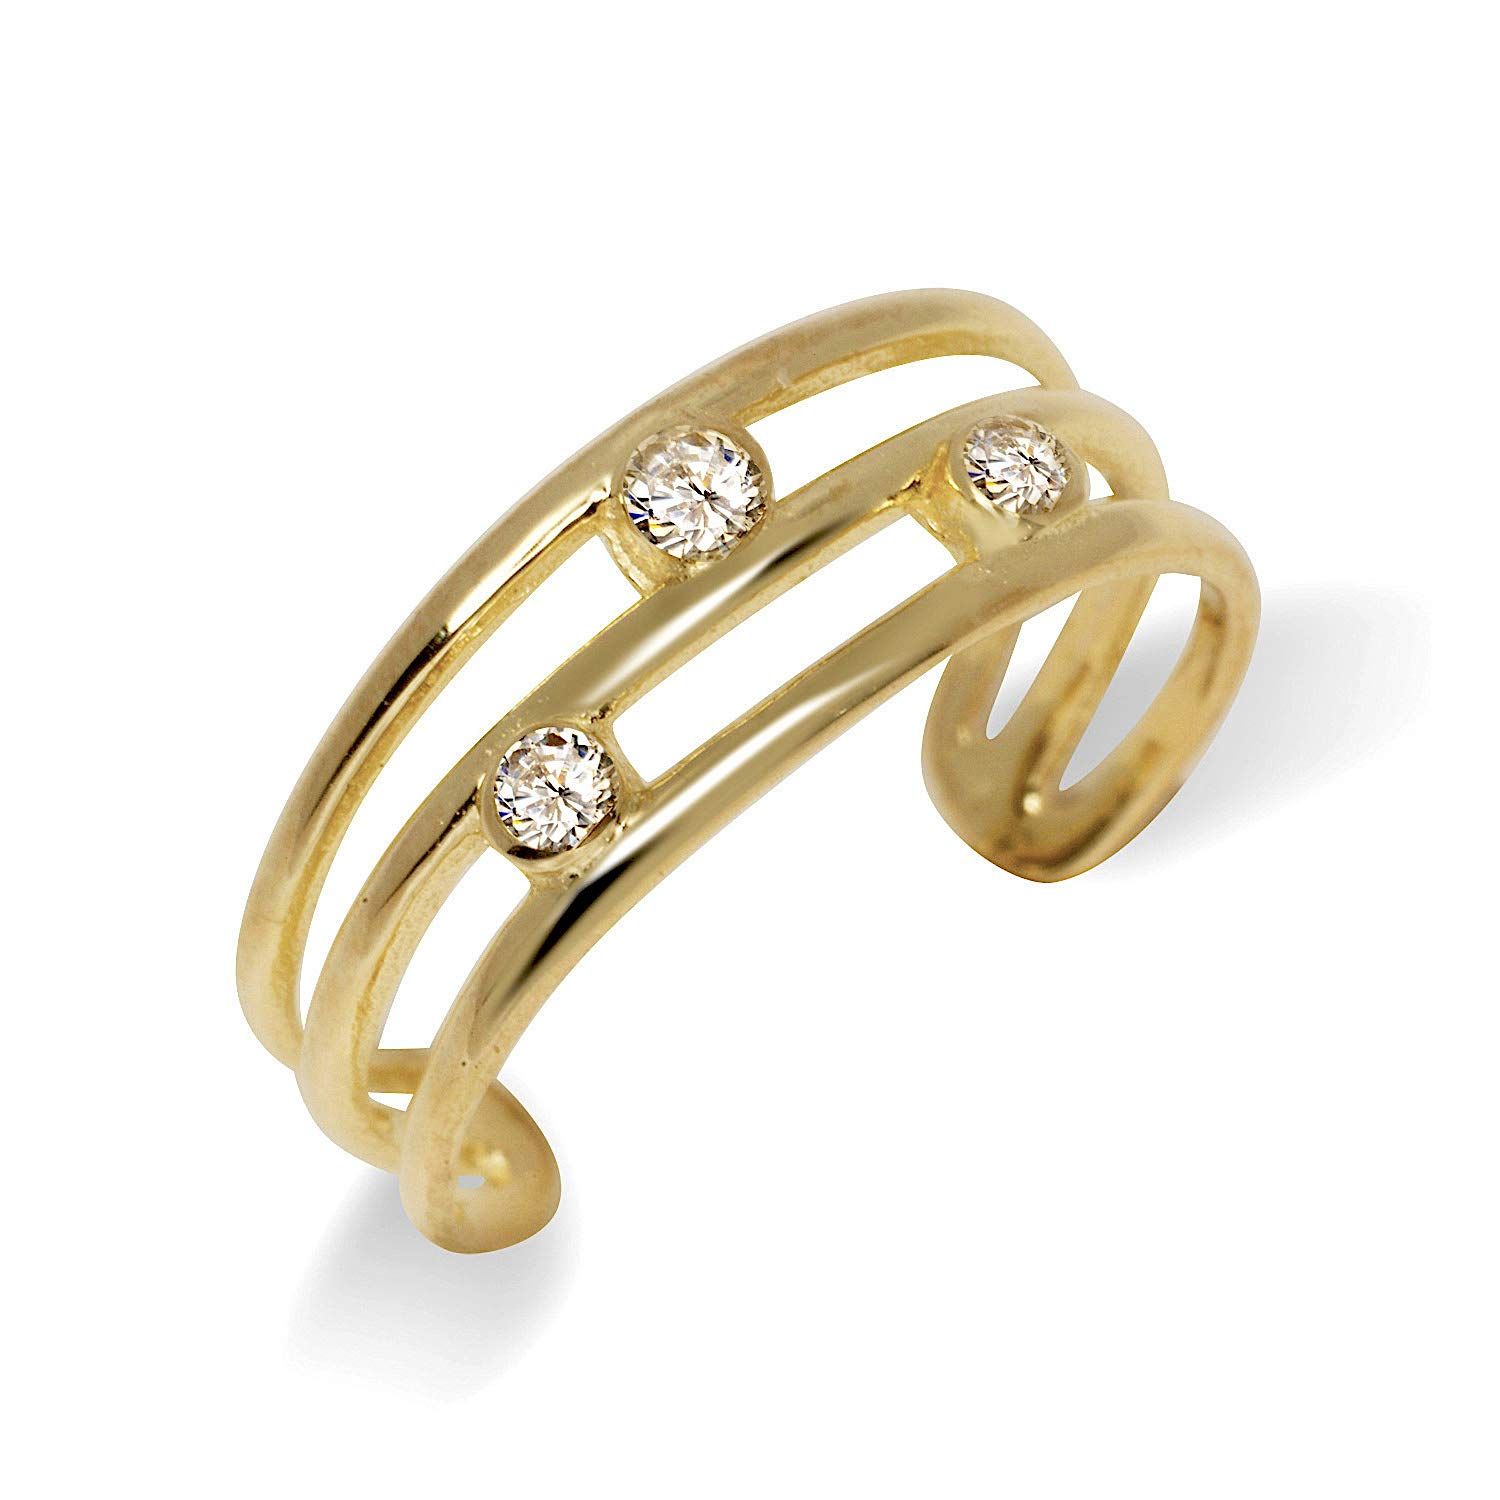 JewelryWeb Solid 10K Yellow or White Gold Adjustable Three Row Bezel-Set Cubic Zirconia Toe Ring (6mmx15mm) (Yellow-Gold)